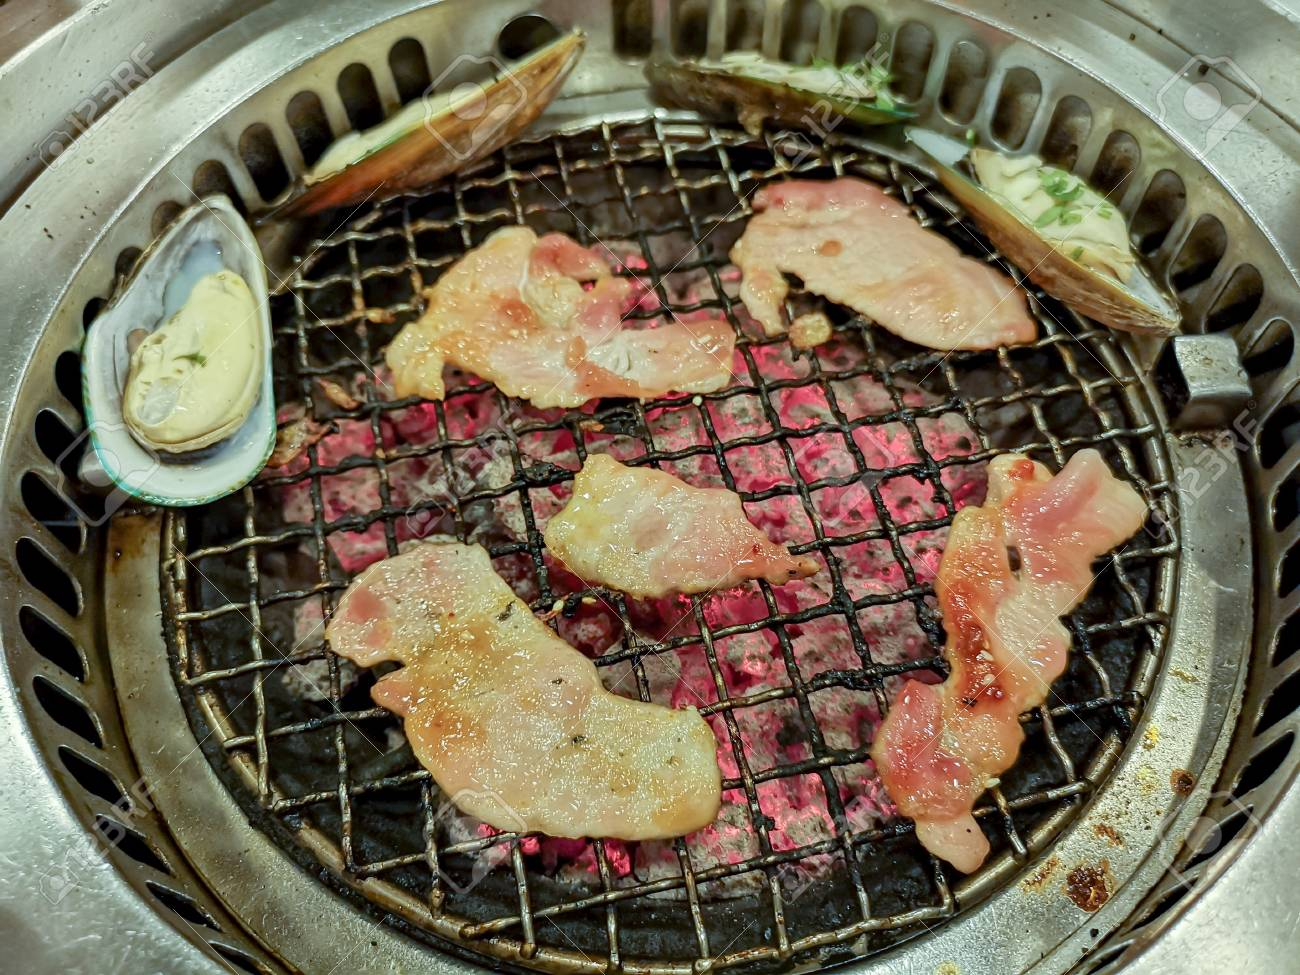 Cooking by grilling sliced pork on charcoal barbecue stove - 106054242